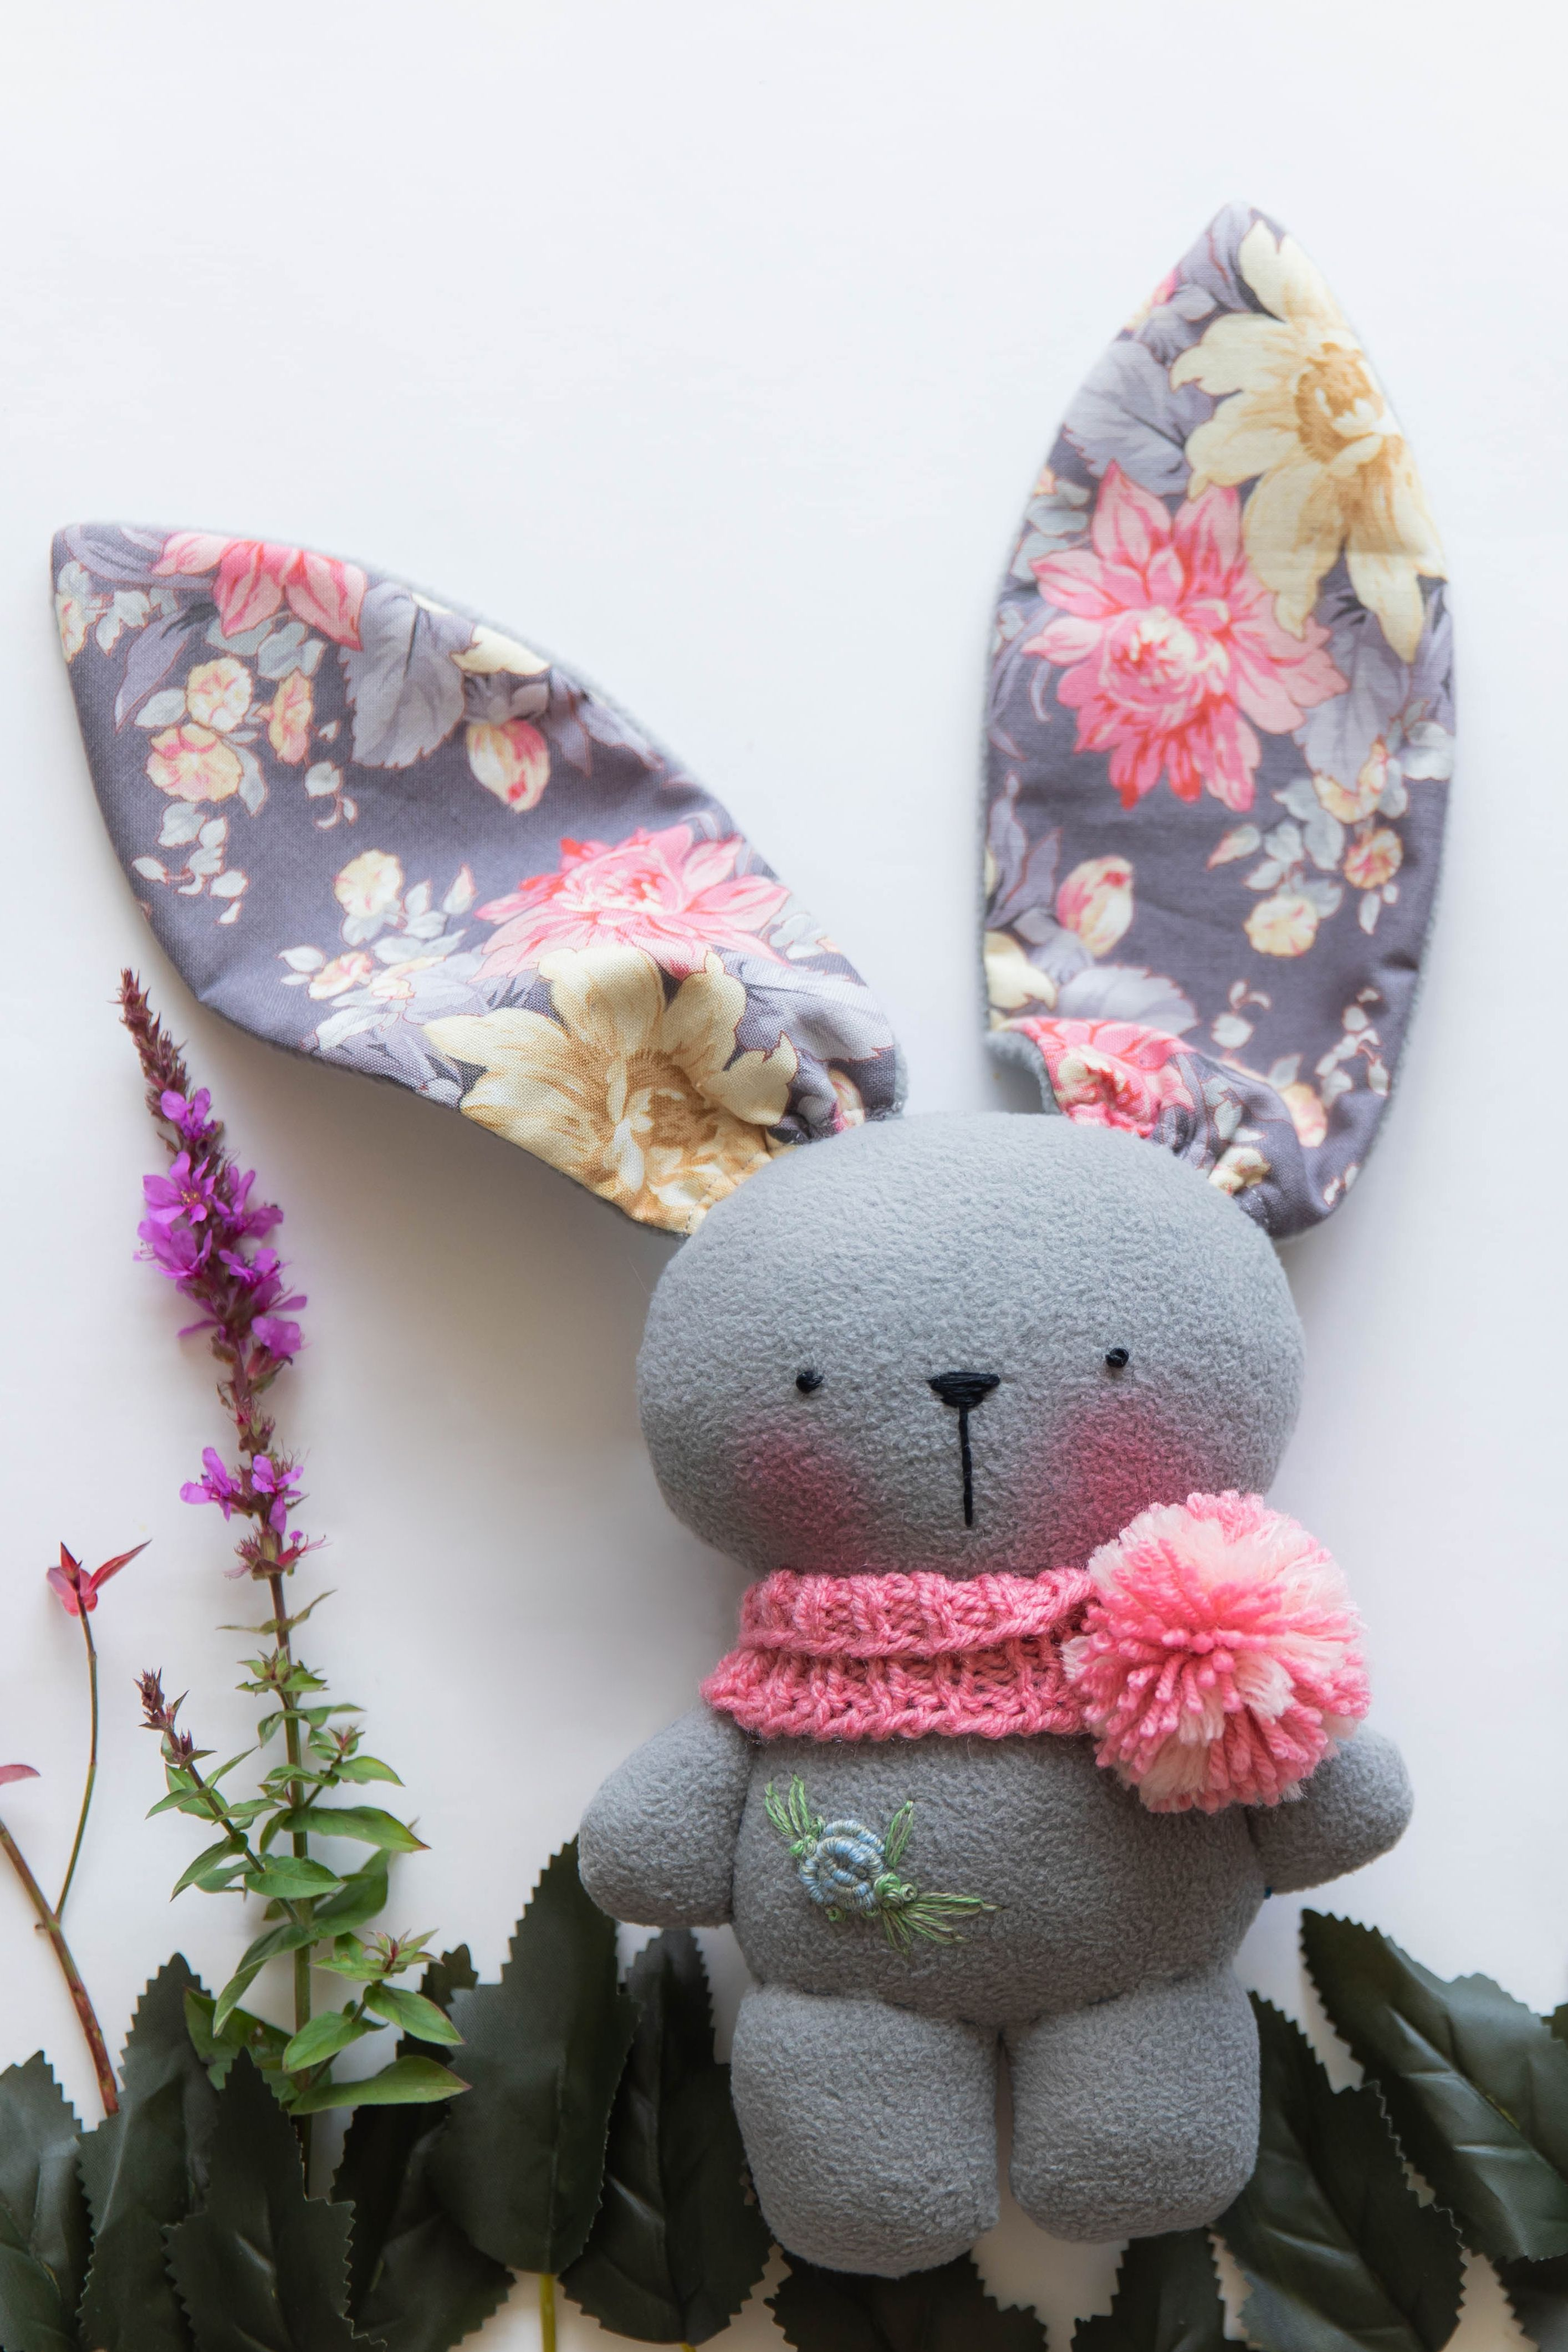 Plush gray bunny toy Plush light gray bunny toy with blushed cheeks and  floral print ears. His body is ma… in 2020 | Bunny toys, Handmade stuffed  animals